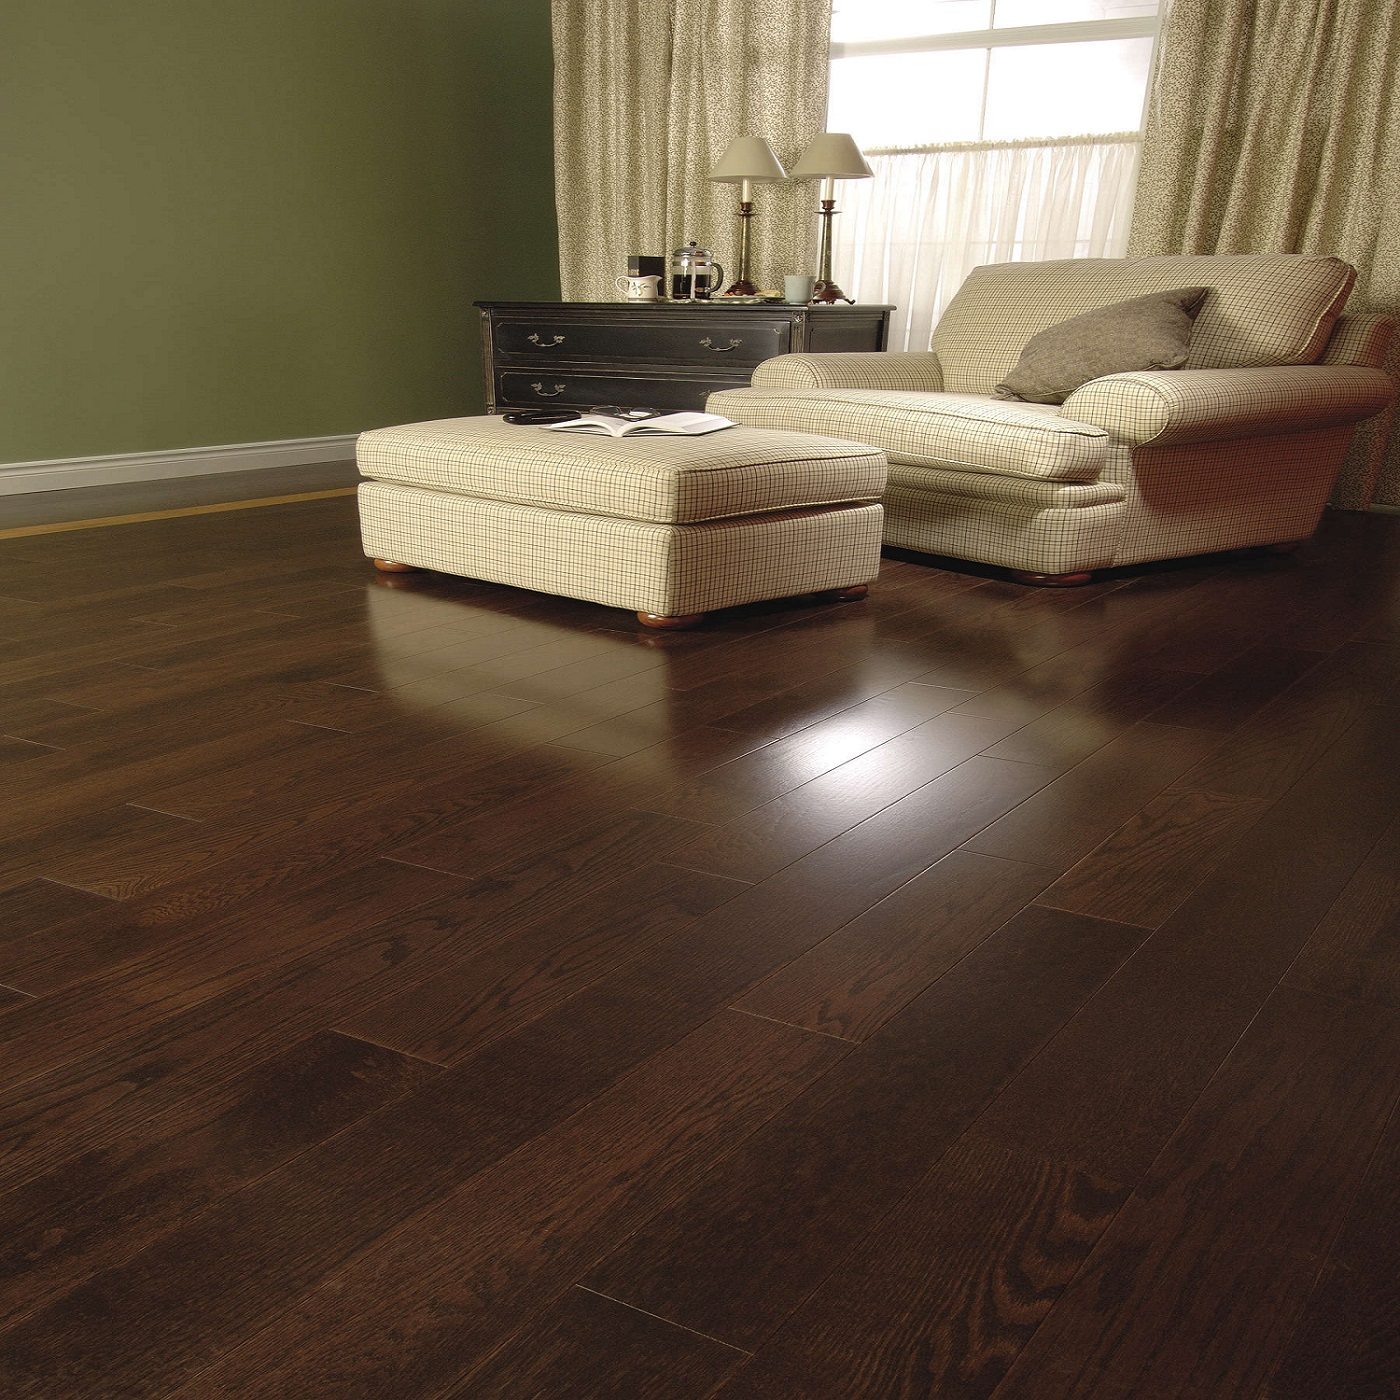 Mirage vienna maple lock hardwood flooring for Mirage wood floors